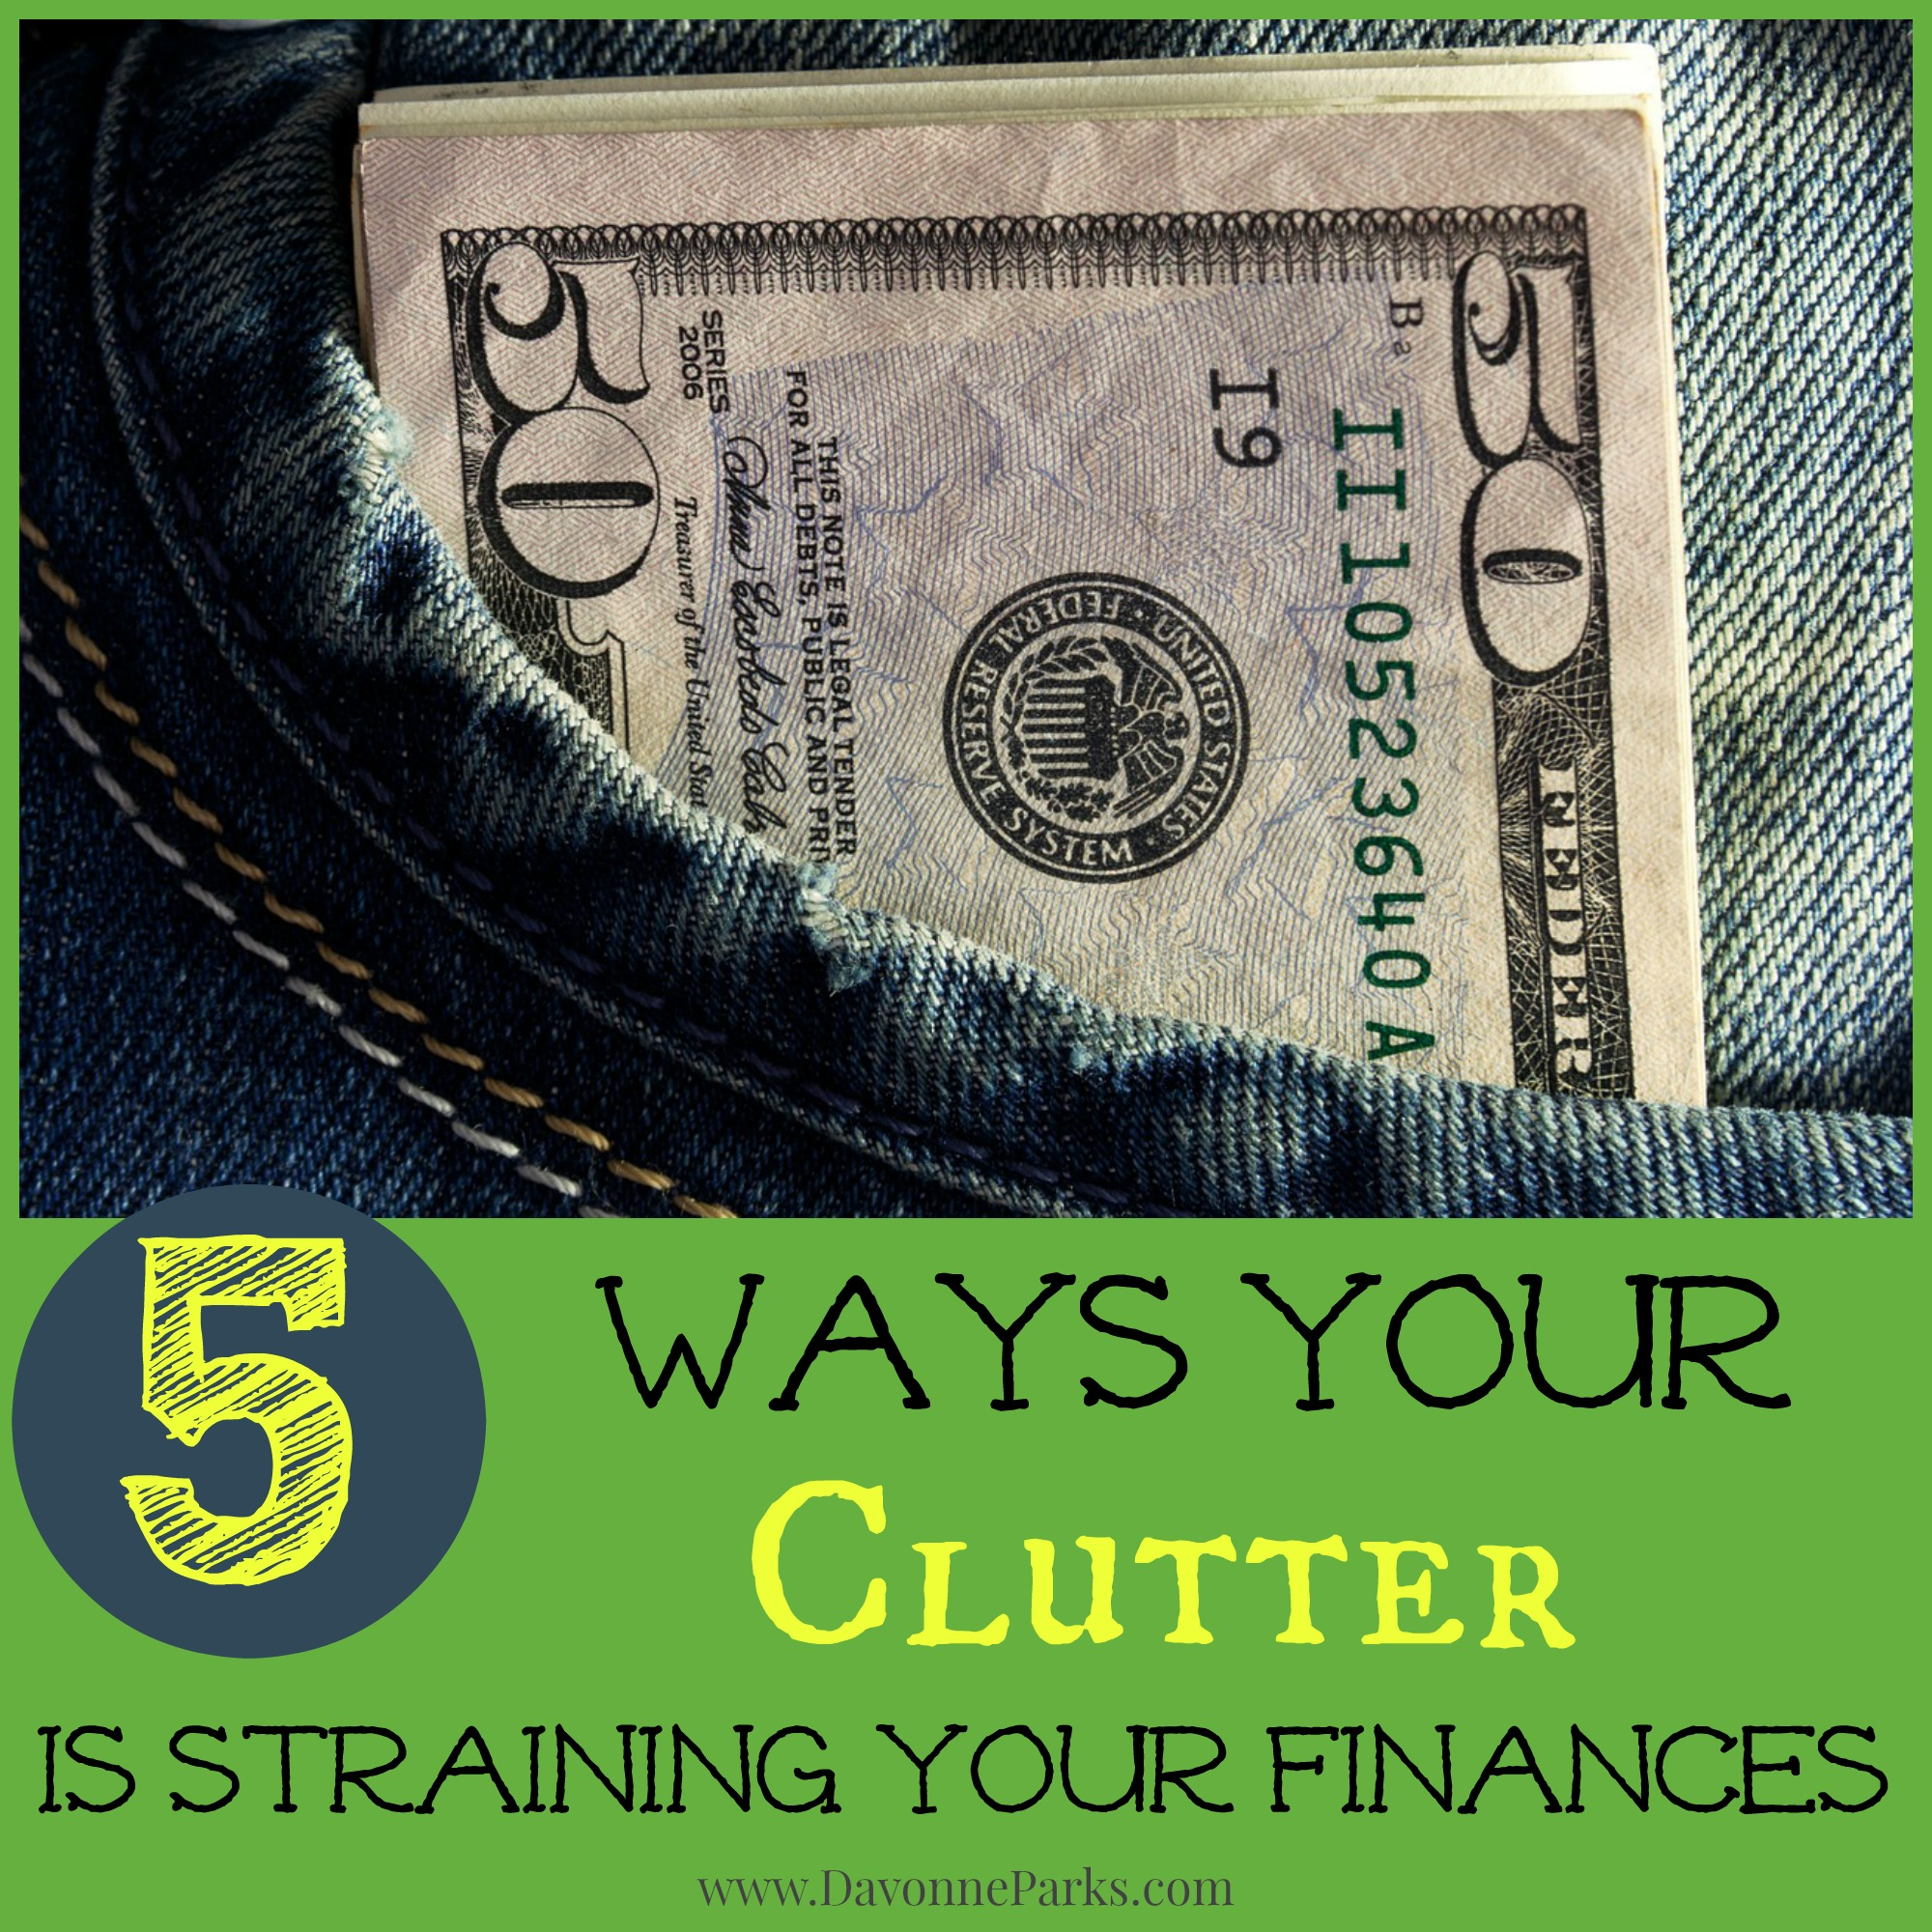 5 Ways Your Clutter is Straining Your Finances